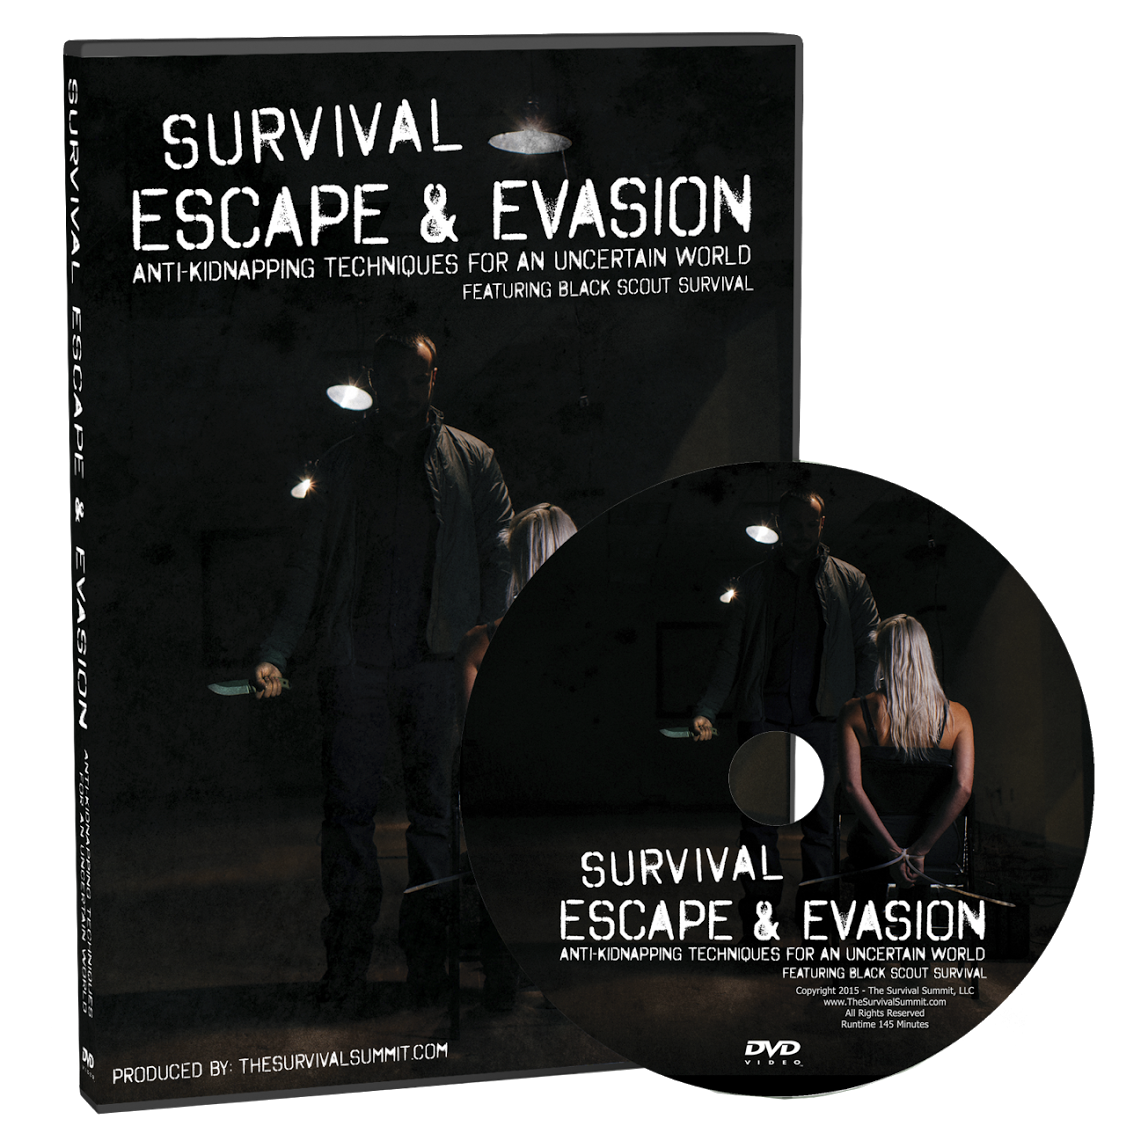 BUY MY ESCAPE AND EVASION DVD HERE